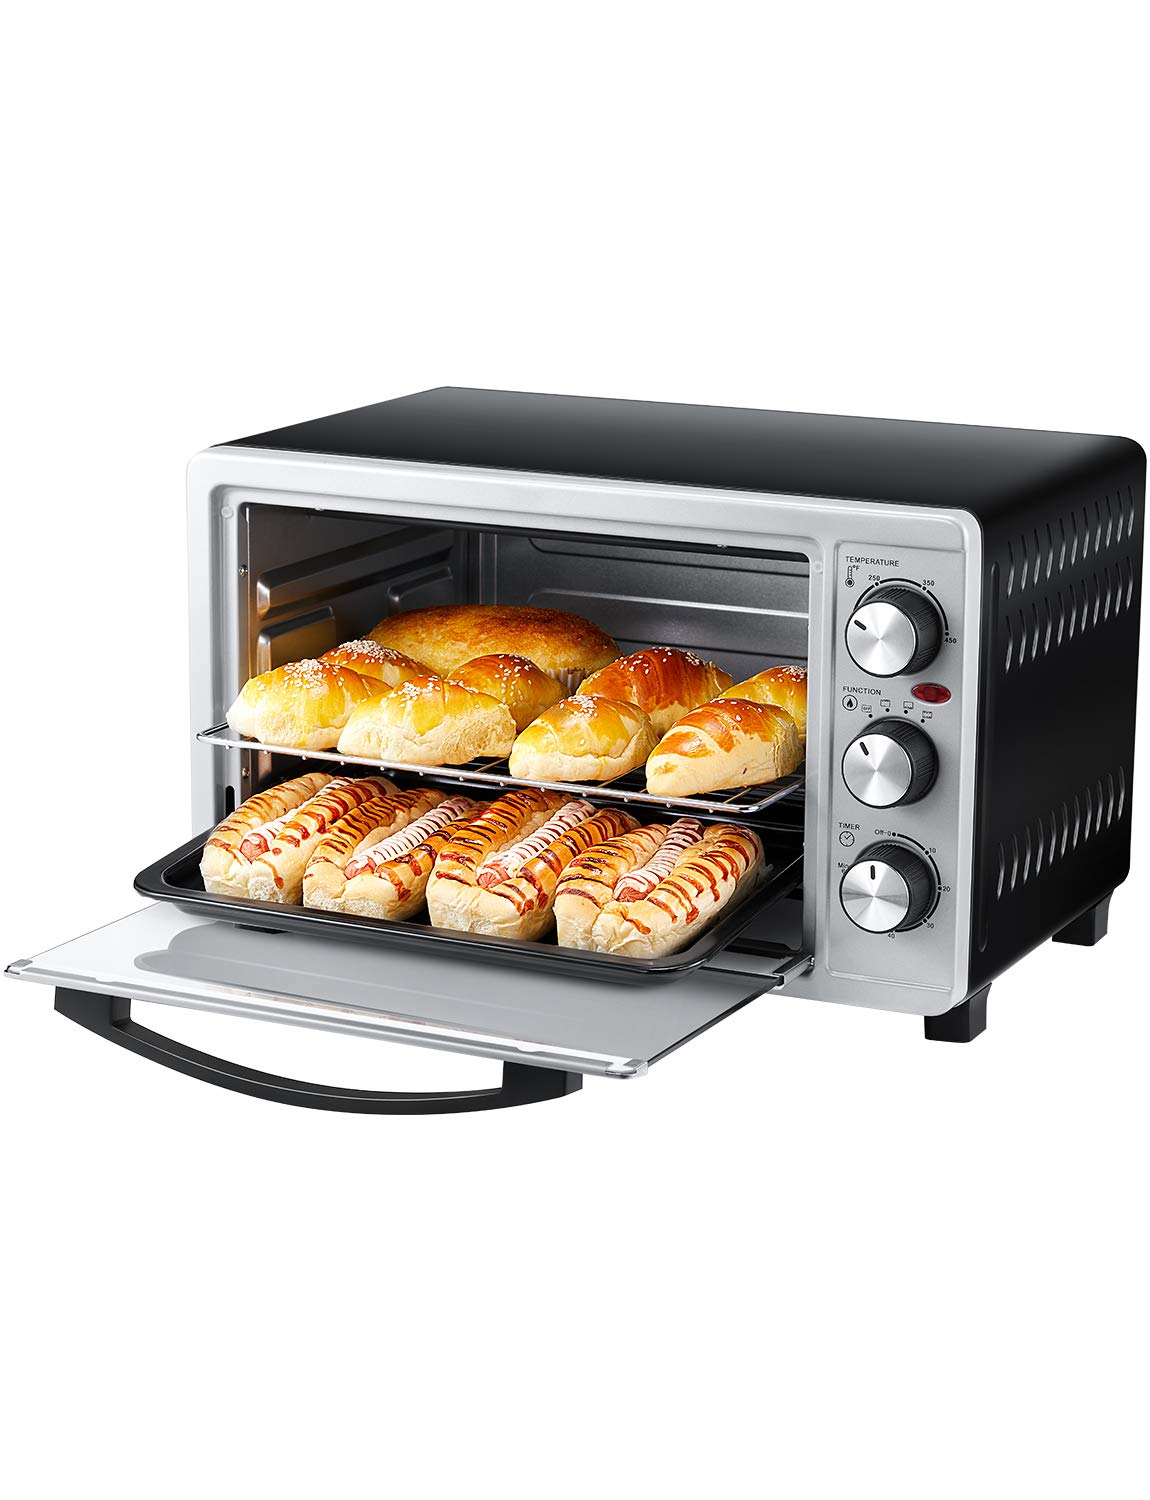 Toaster Oven 6 Slice Oven Toaster SpeedBaking, for Toast/Bake/Broil Function with 4 Heating Elements Intuitive Easy-Reach Toaster Oven Broiler Stainless Steel Toaster Oven